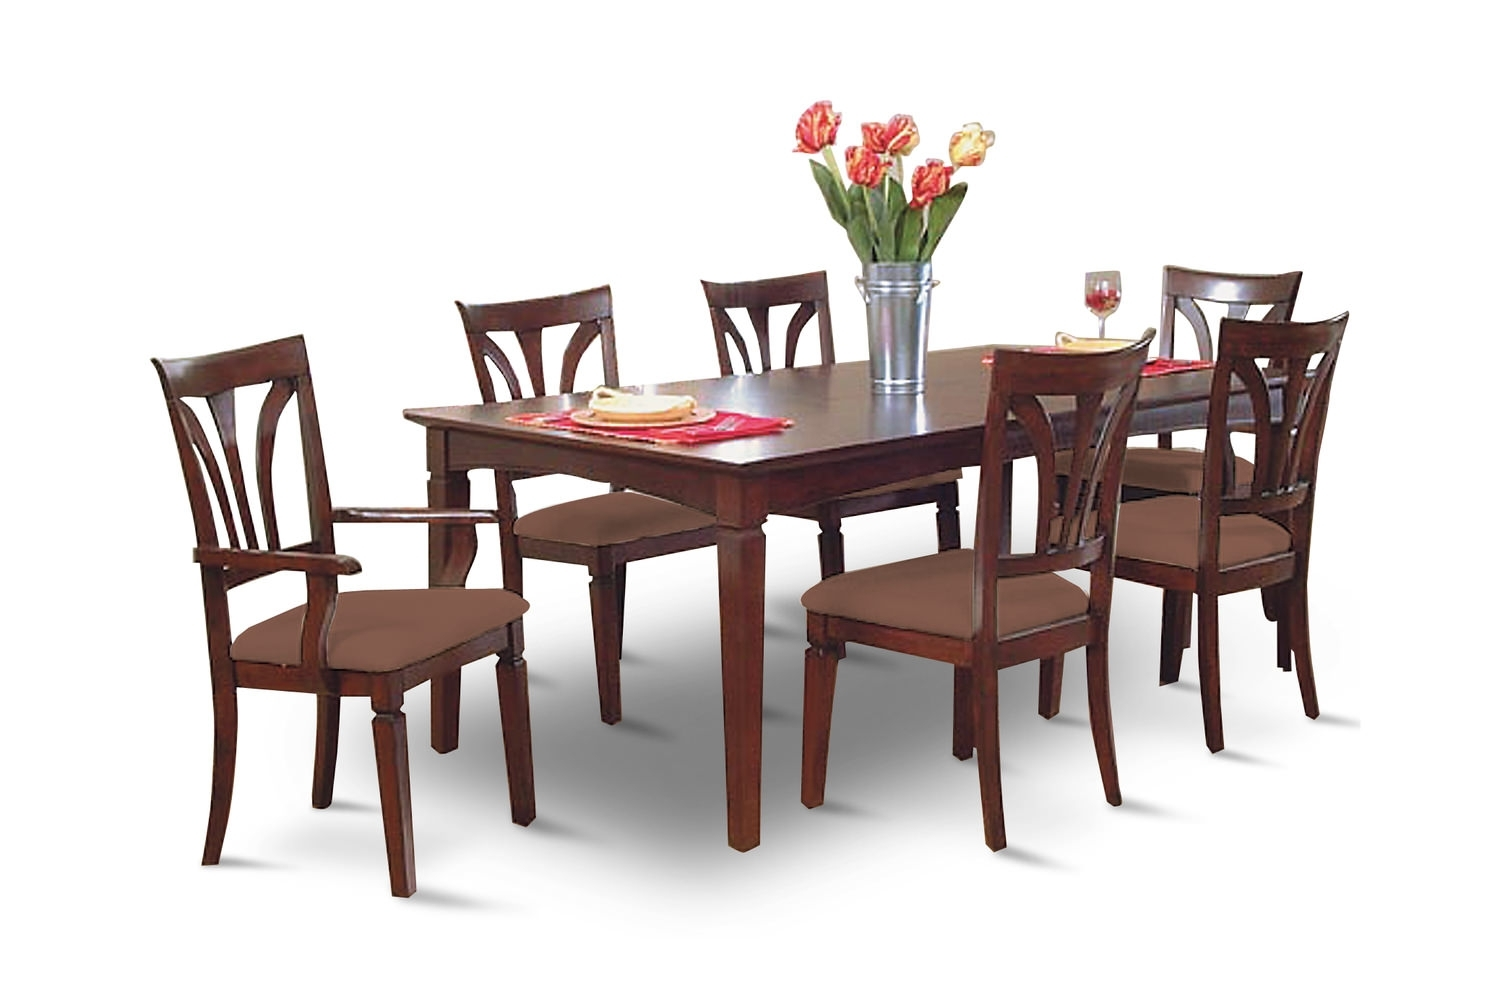 Dining Sets – Kitchen & Dining Room Sets – Hom Furniture Within Most Up To Date Chapleau Ii 7 Piece Extension Dining Tables With Side Chairs (Image 10 of 20)